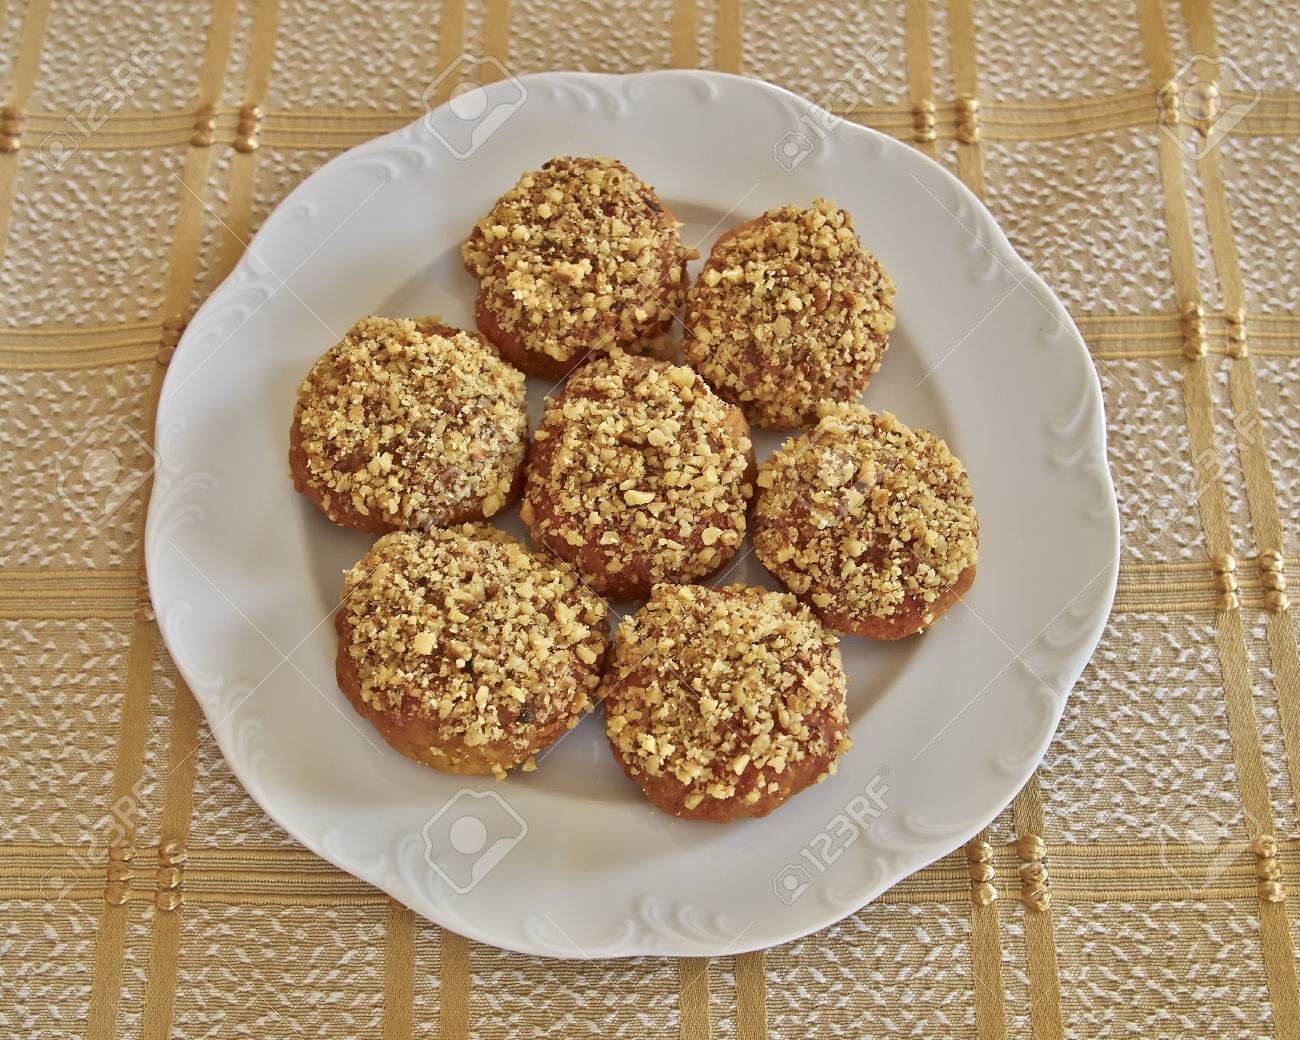 Melomacarona Gourmet Greek Christmas Cookies With Walnuts And